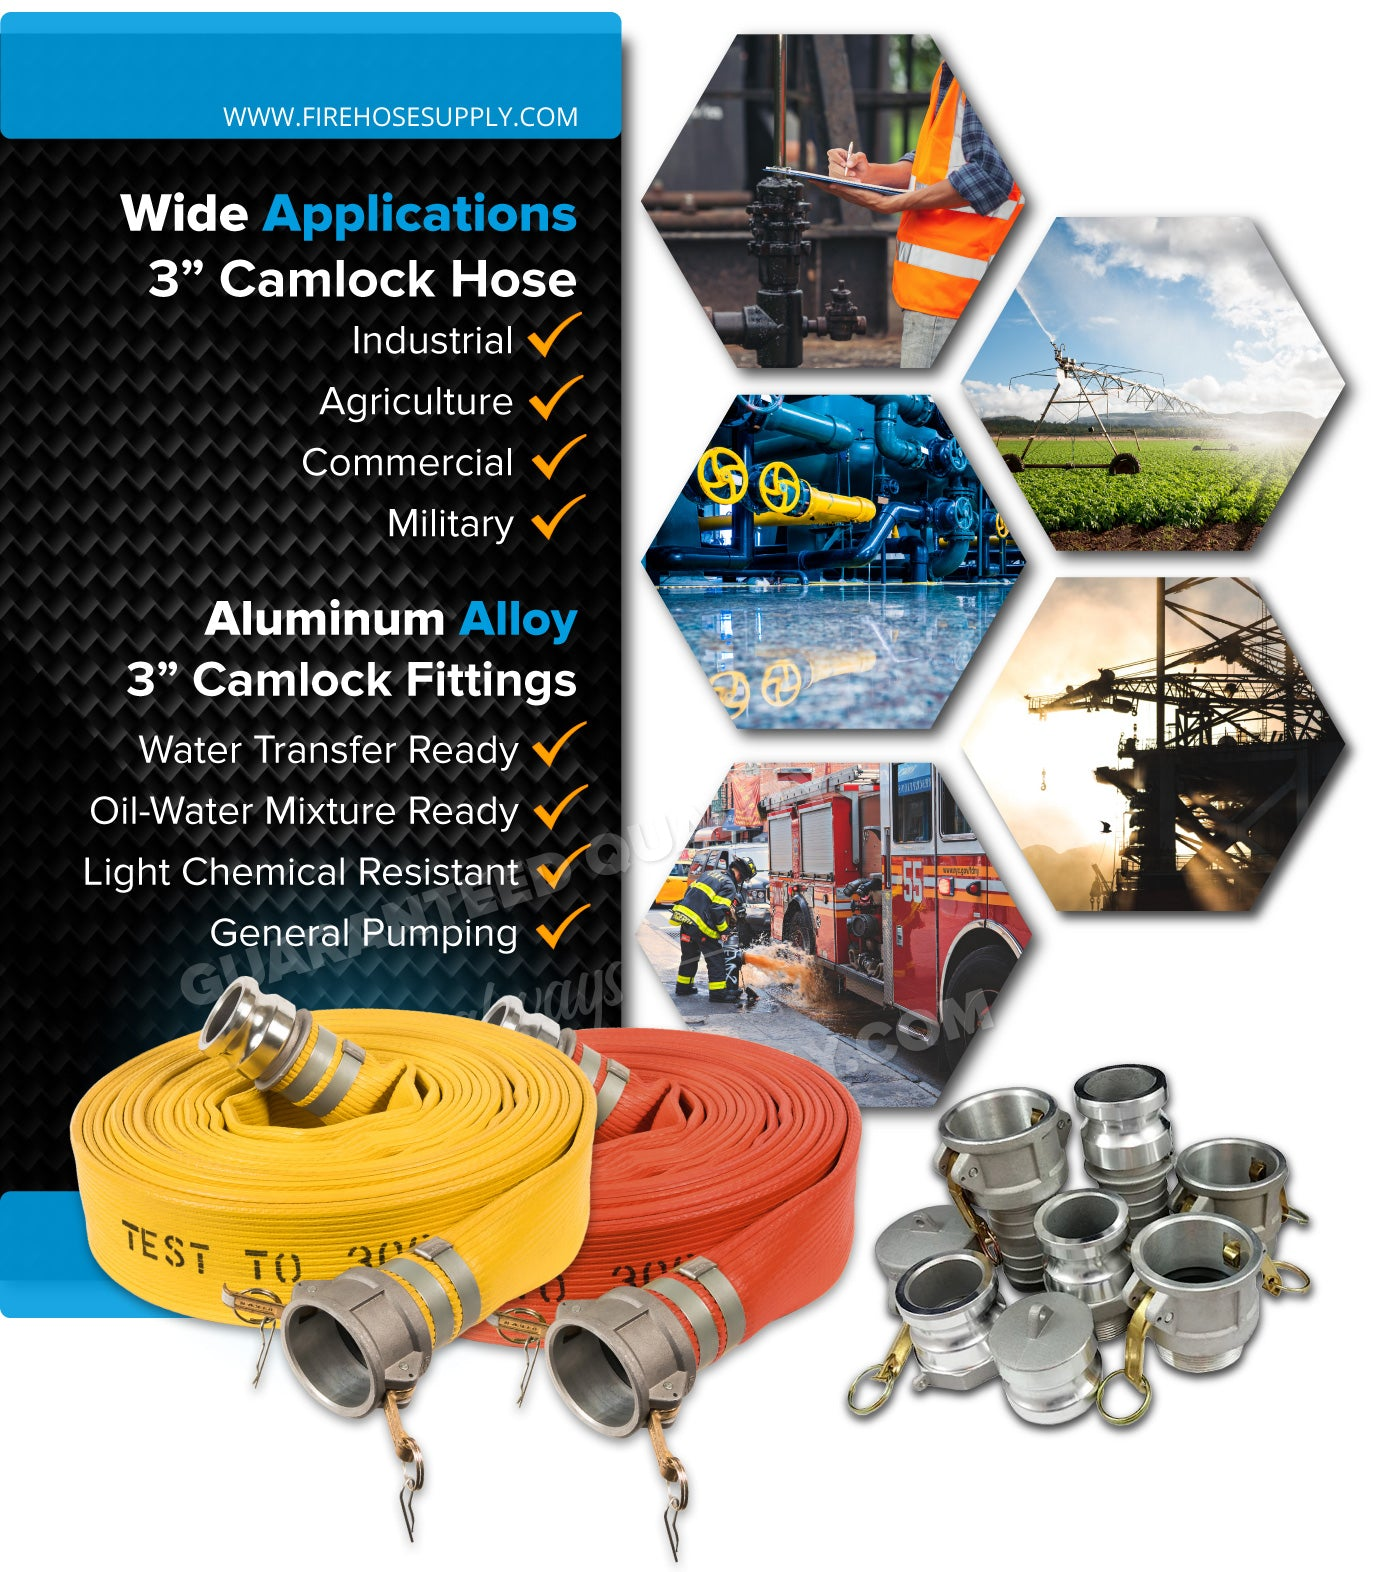 3 Inch Rubber Camlock Fire Hose For Industrial Applications